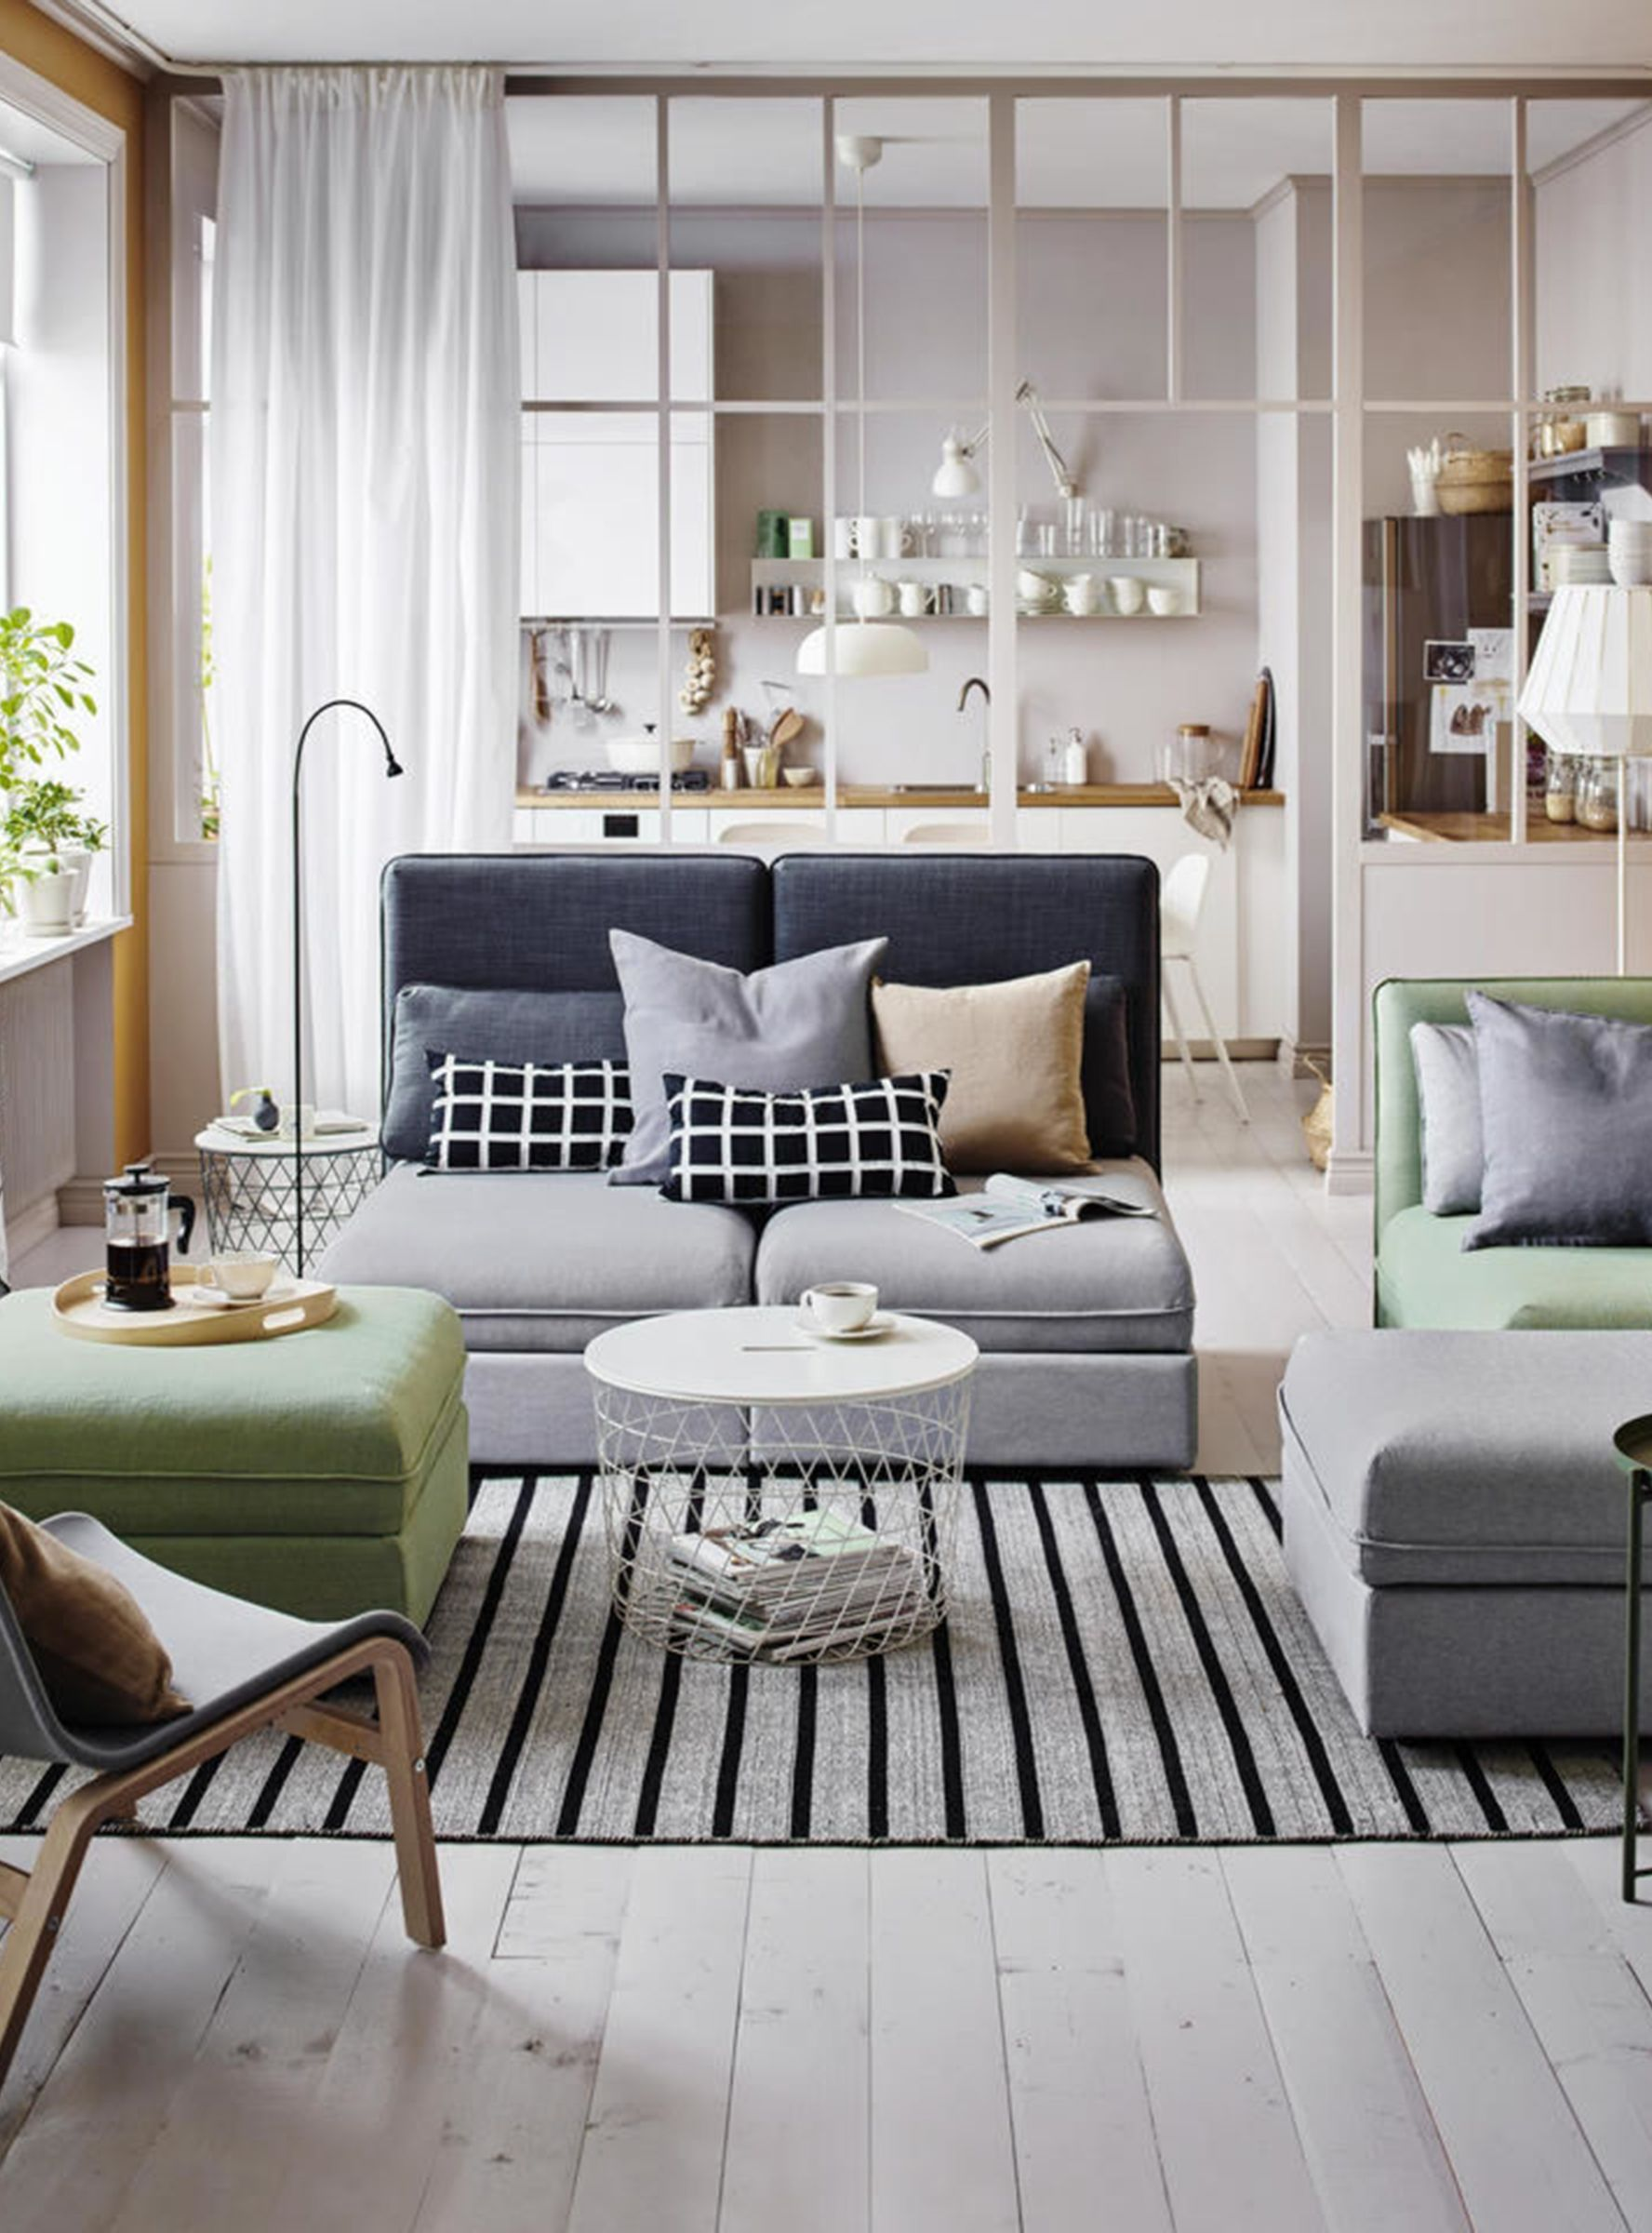 All The Home Products You Need From Ikea S 2018 Catalog Http R29 Co 2ua3bbr Living Room Furniture Layout Home Ikea 2018